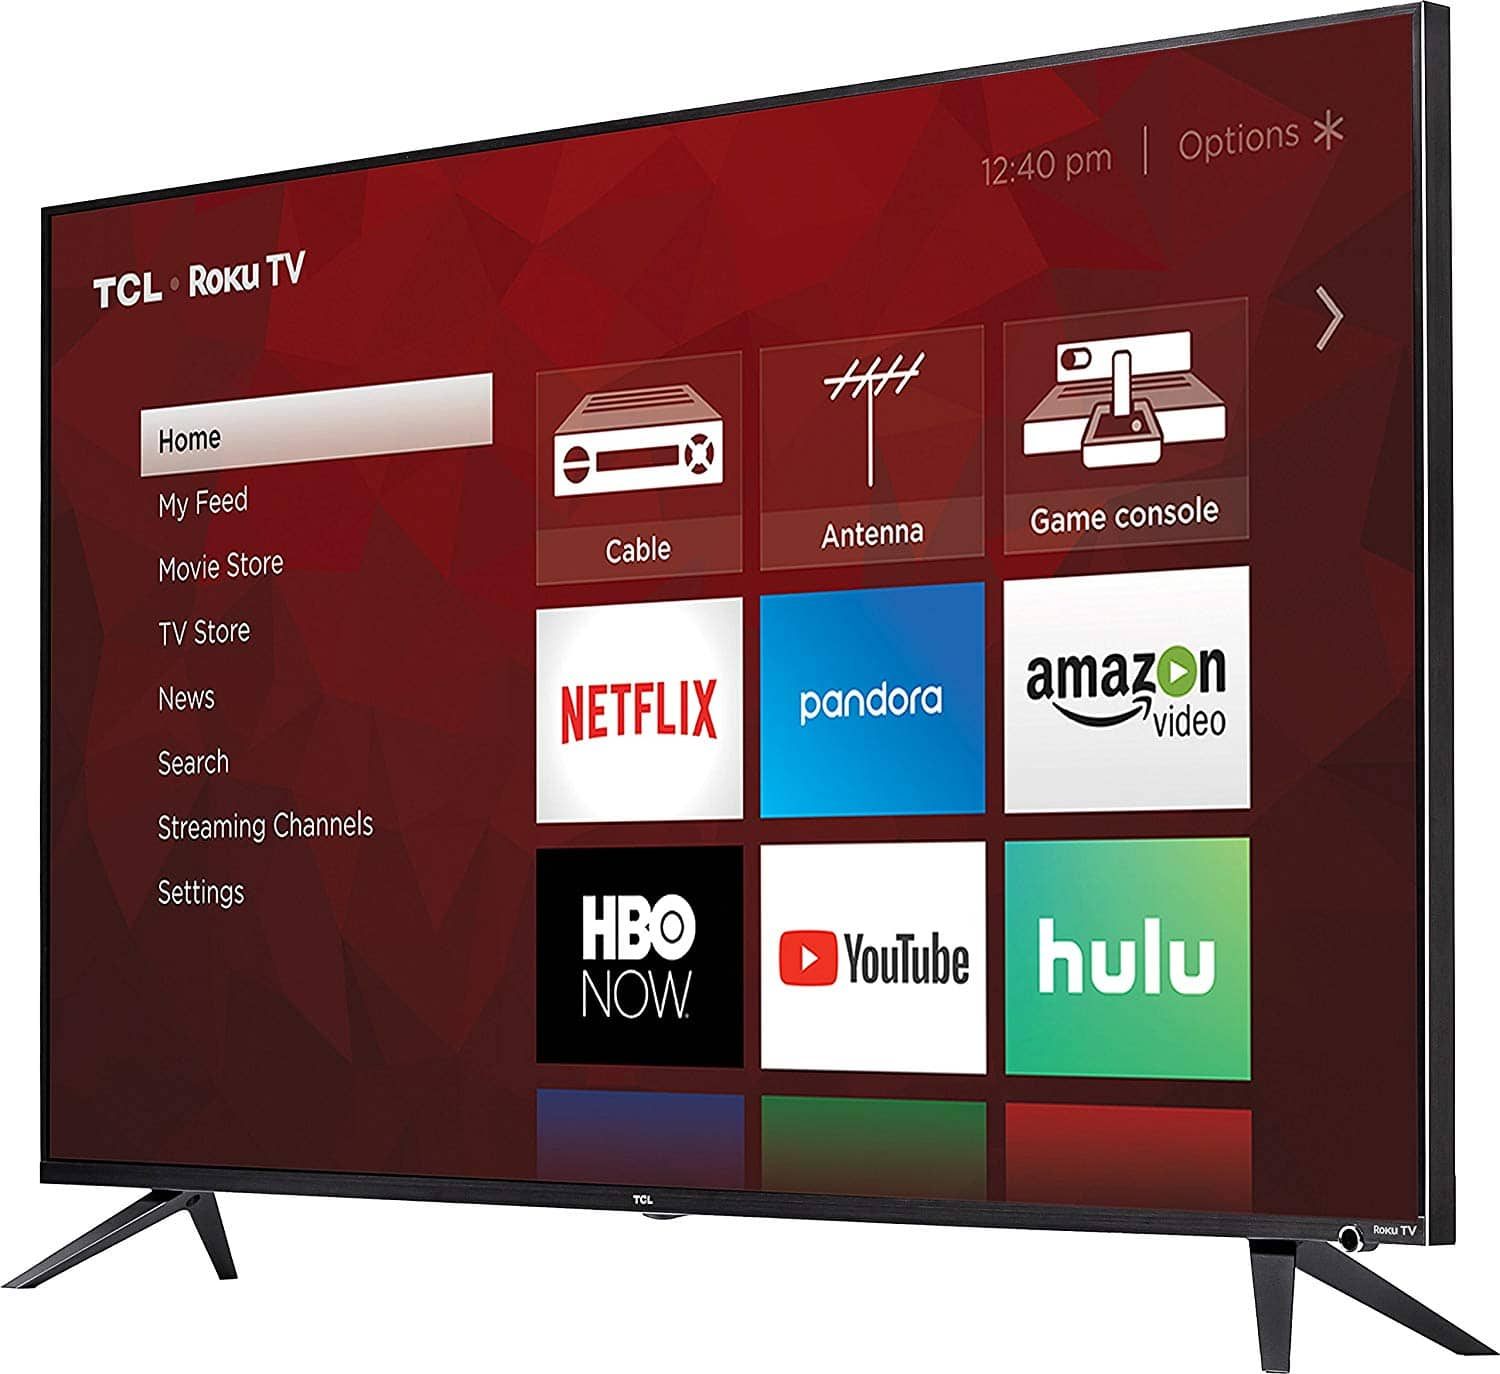 "TCL 6-Series 55R617 55"" 4K HDTV for $438 if you have an Amazon Prime Credit Card"